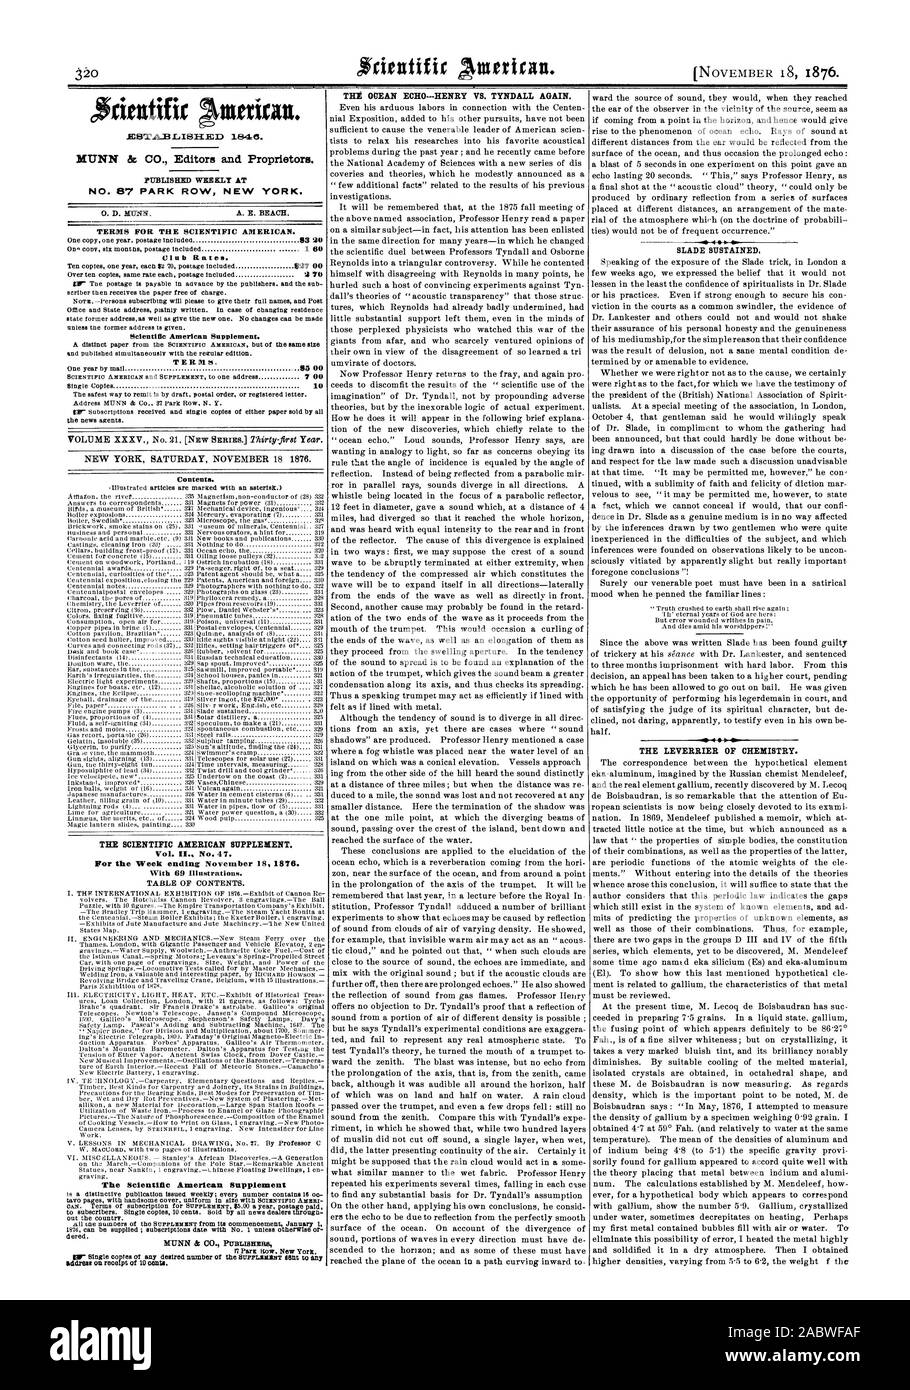 Reynolds into a triangular controversy. While he contented himself with disagreeing with Reynolds in many points he 40 4  4 04 SLADE SUSTAINED So ow THE LEVERRIER OF CHEMISTRY., scientific american, 1876-11-18 Stock Photo